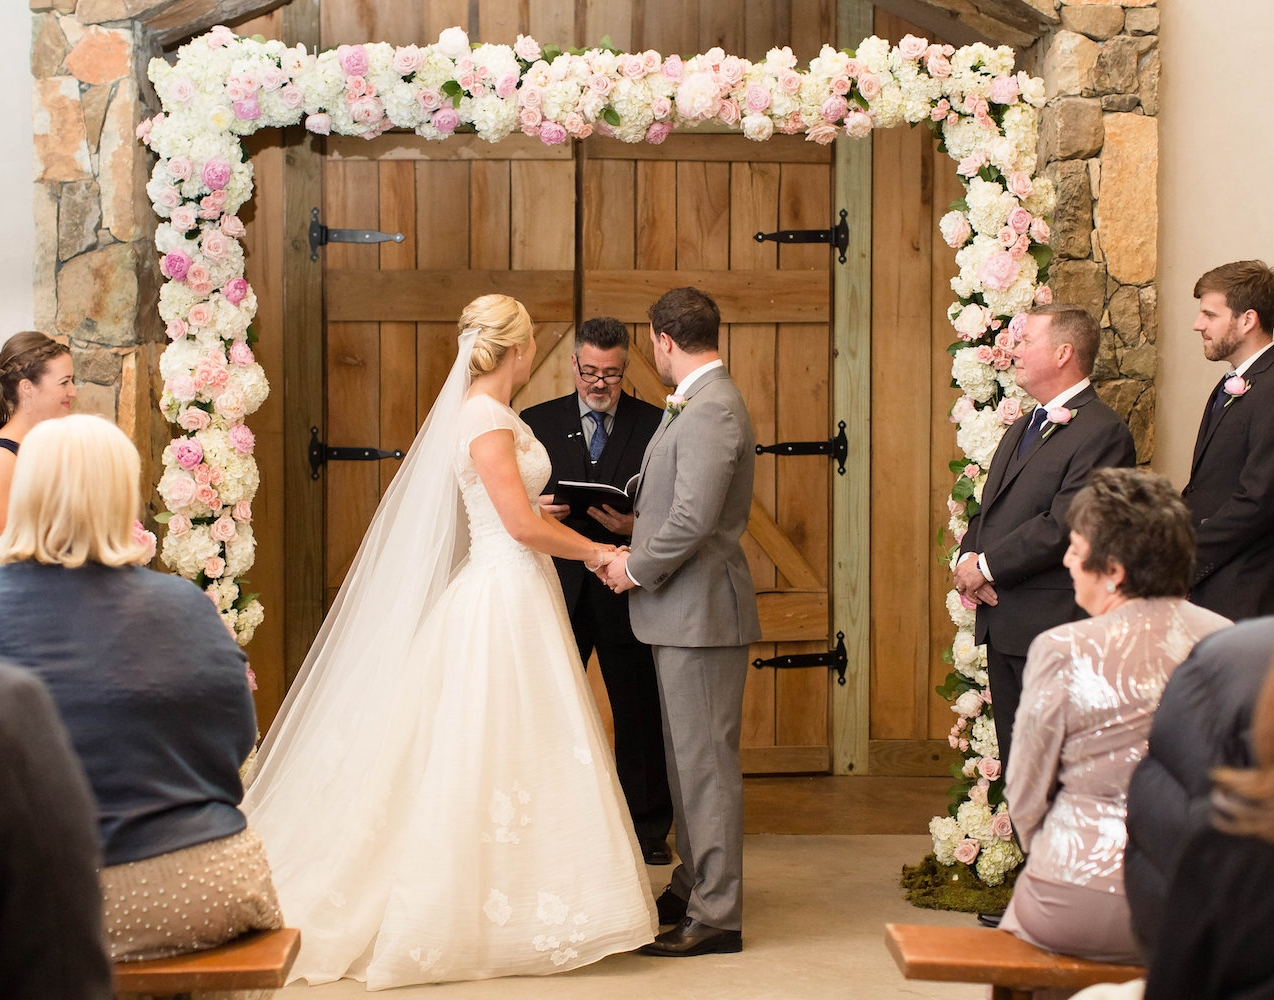 Stone Tower Wedding with full floral arch. Photography by Candice Adelle.